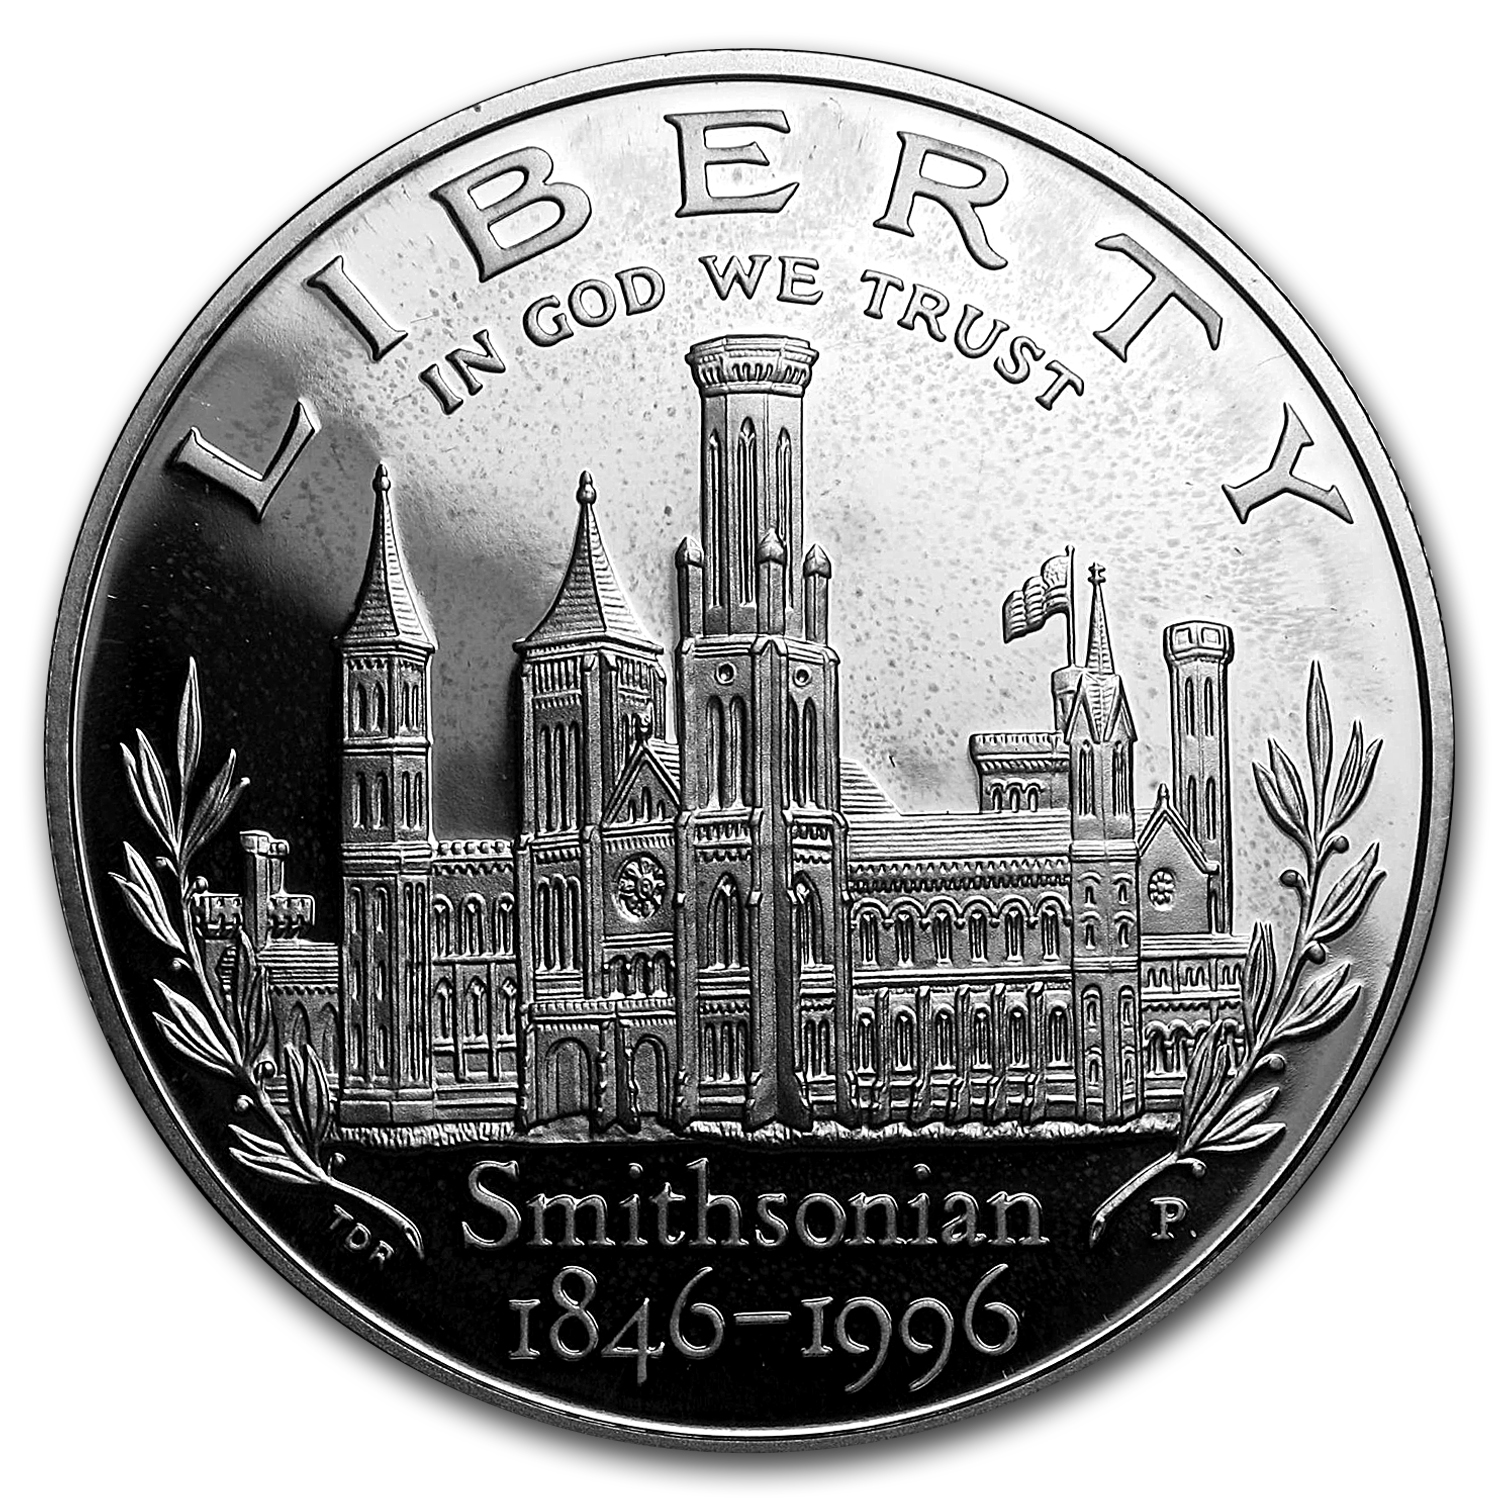 1996-P Smithsonian $1 Silver Commem Proof (w/Box & COA)